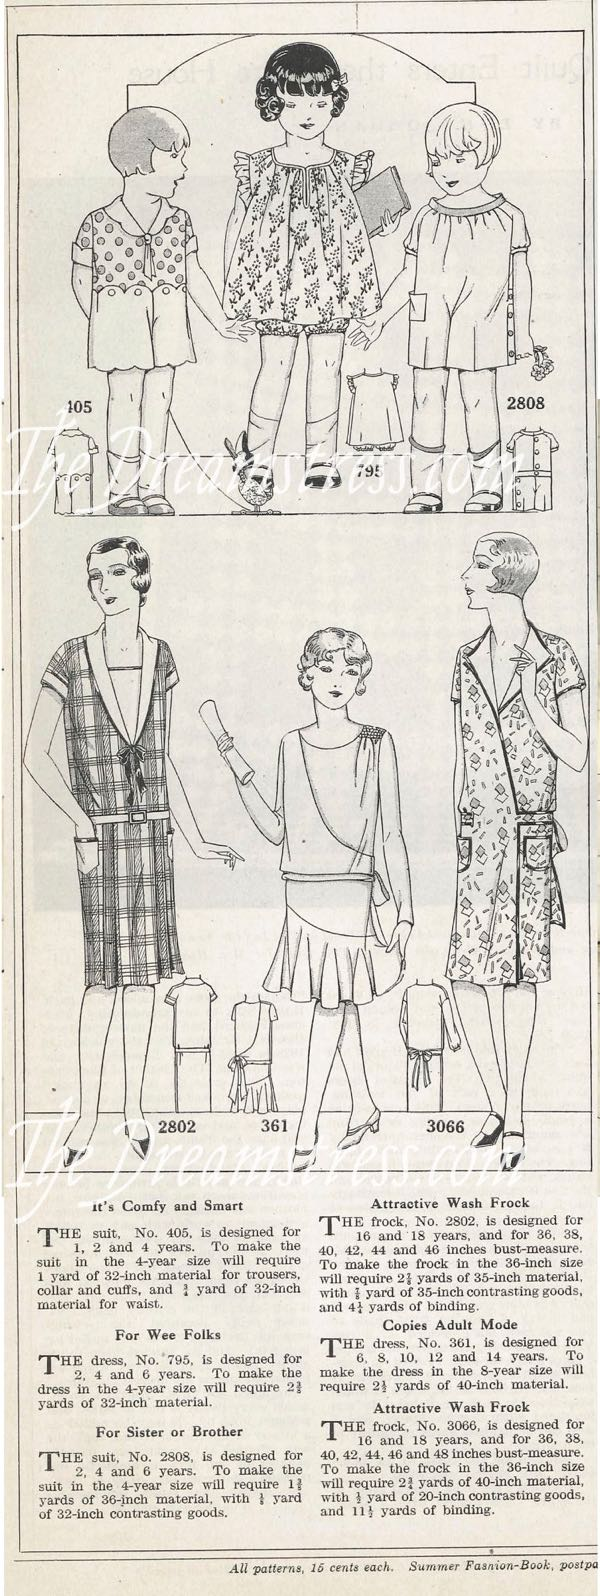 Clothes for toddlers and girls, 1929, thedreamstress.com